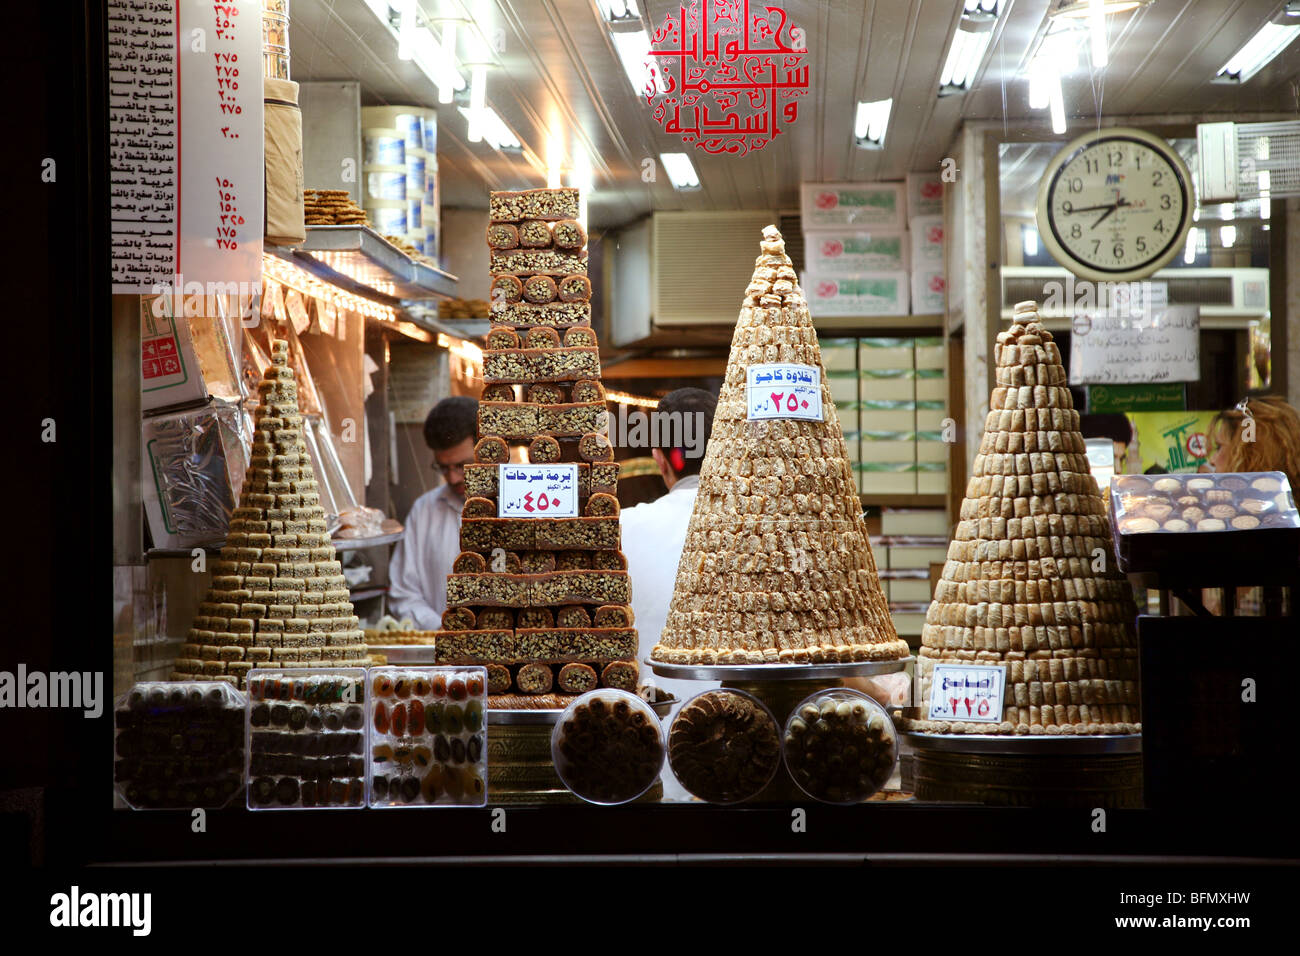 Syria, Damascus. Baclava and other Syrian pastries and treats piled neatly in a patisserie window. - Stock Image